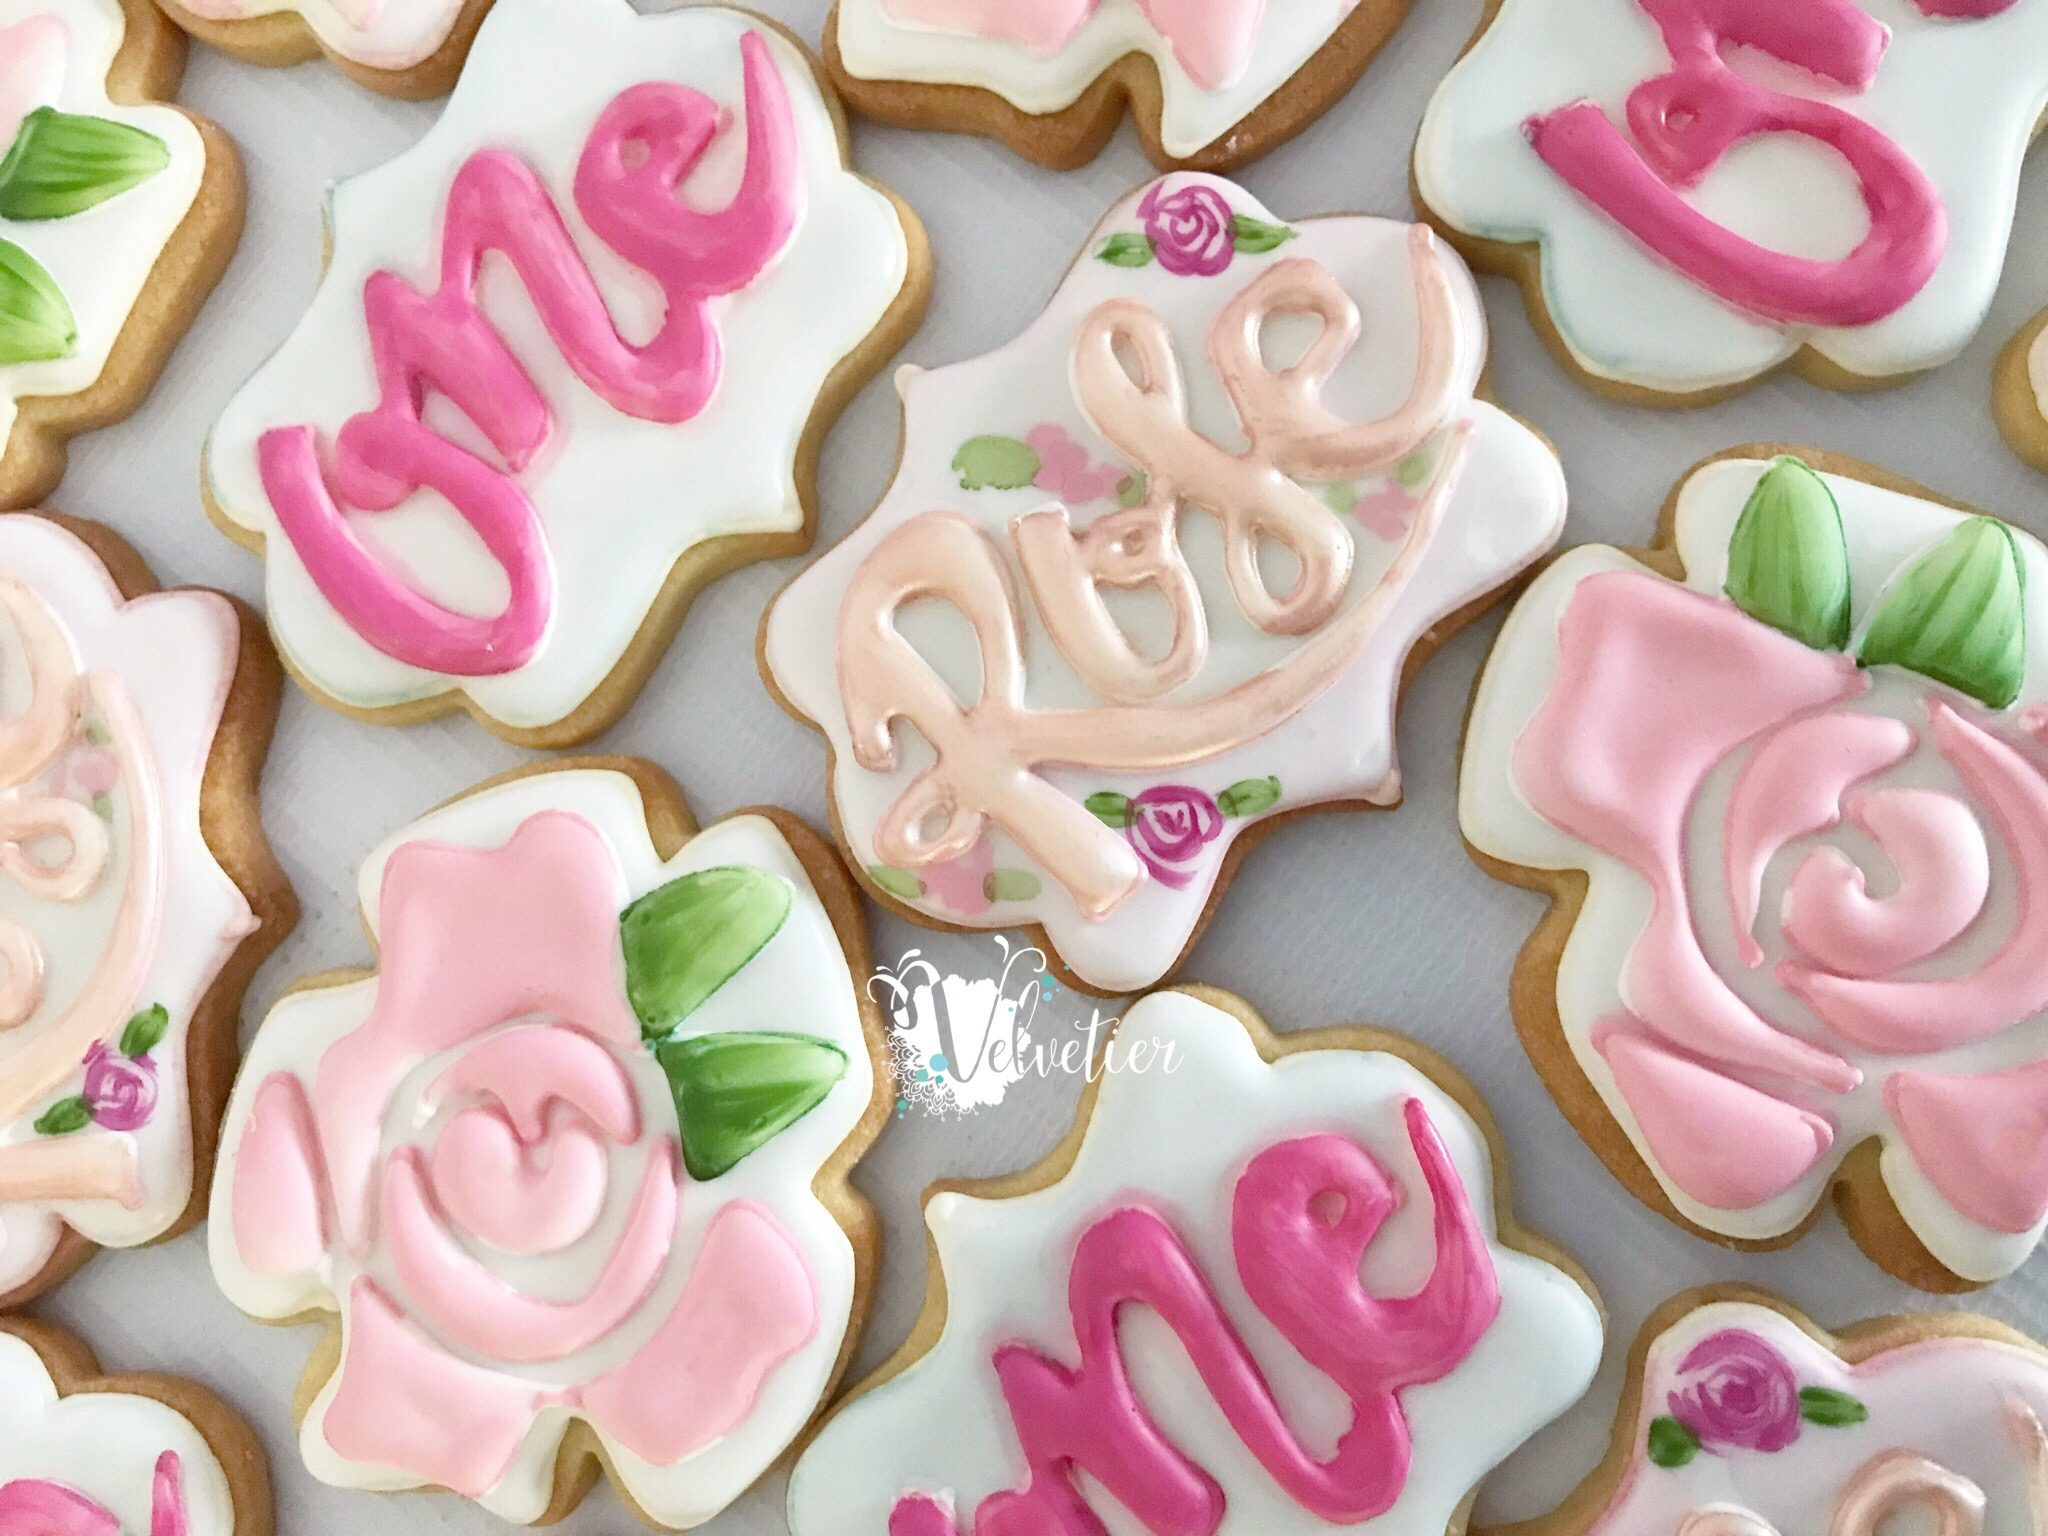 shades of pink rose first birthday cookies by velvetier brisbane 3